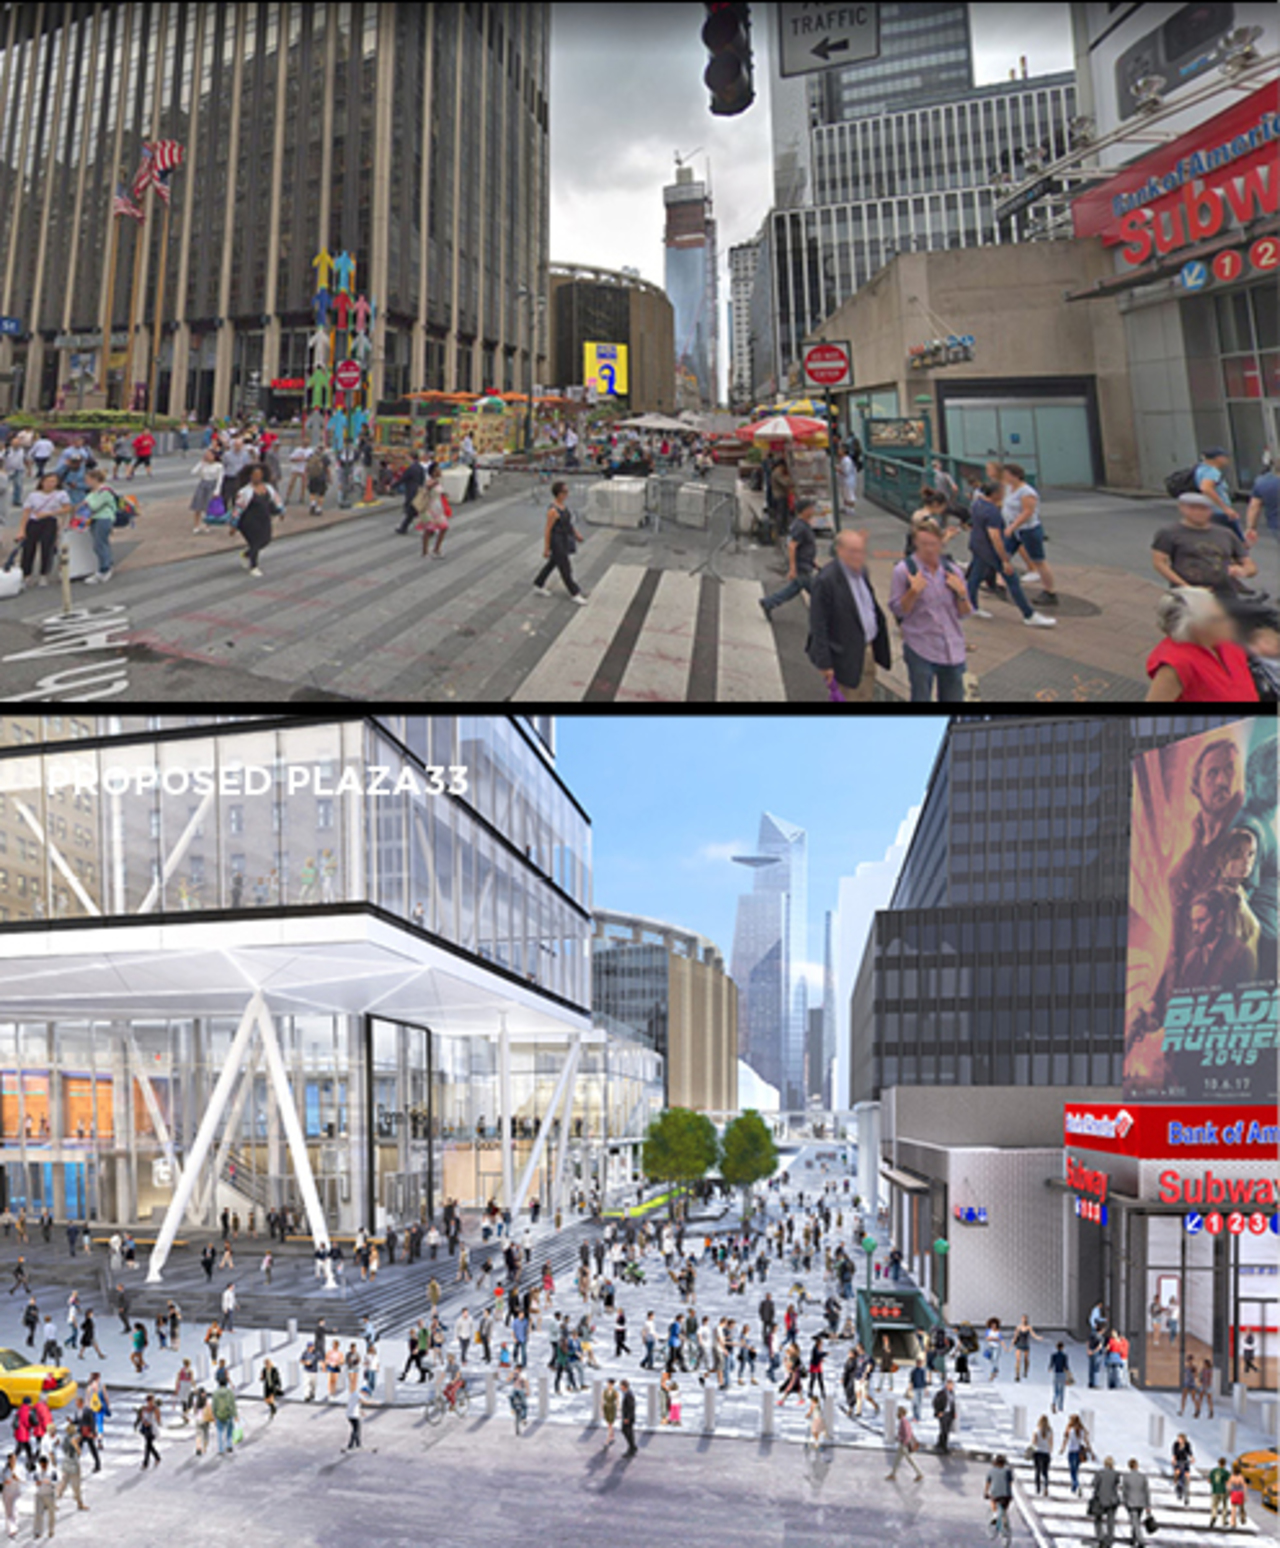 Exisitng Plaza33 / Proposed Plaza33